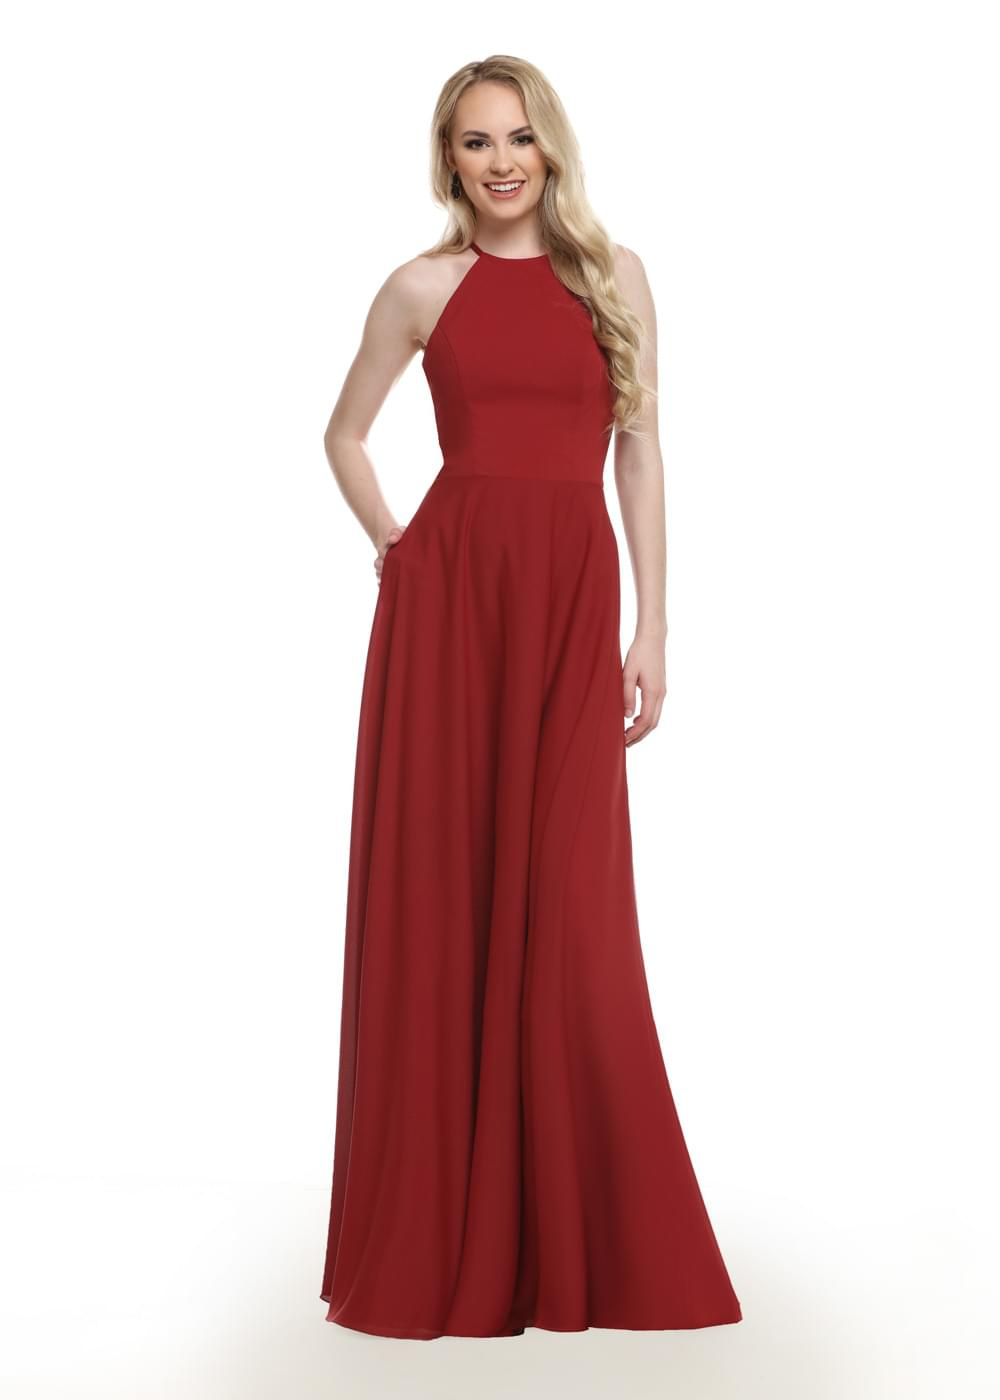 TH-83022 TH Bridesmaid Dresses By Ashdon